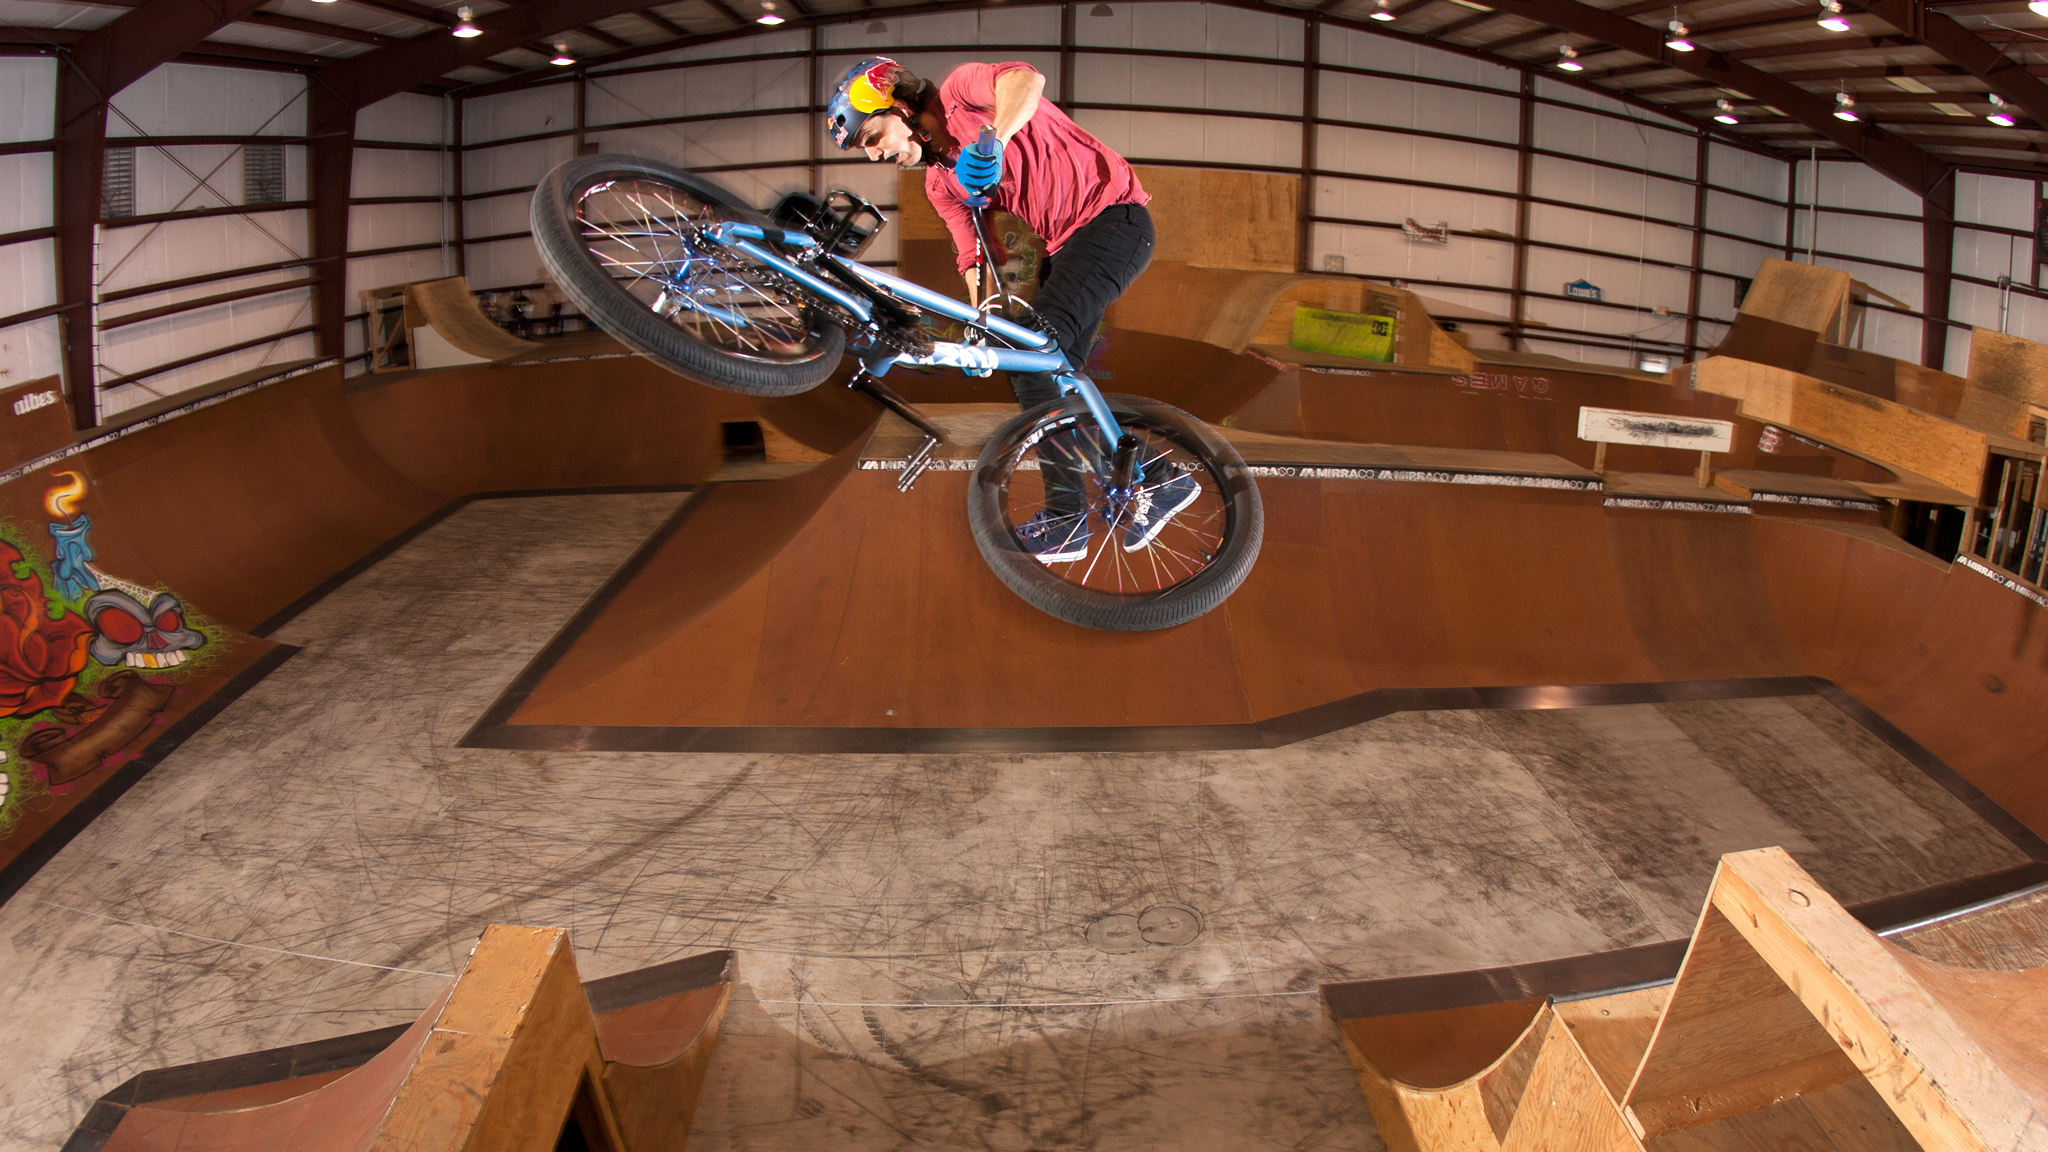 Dhers, Tailwhip transfer